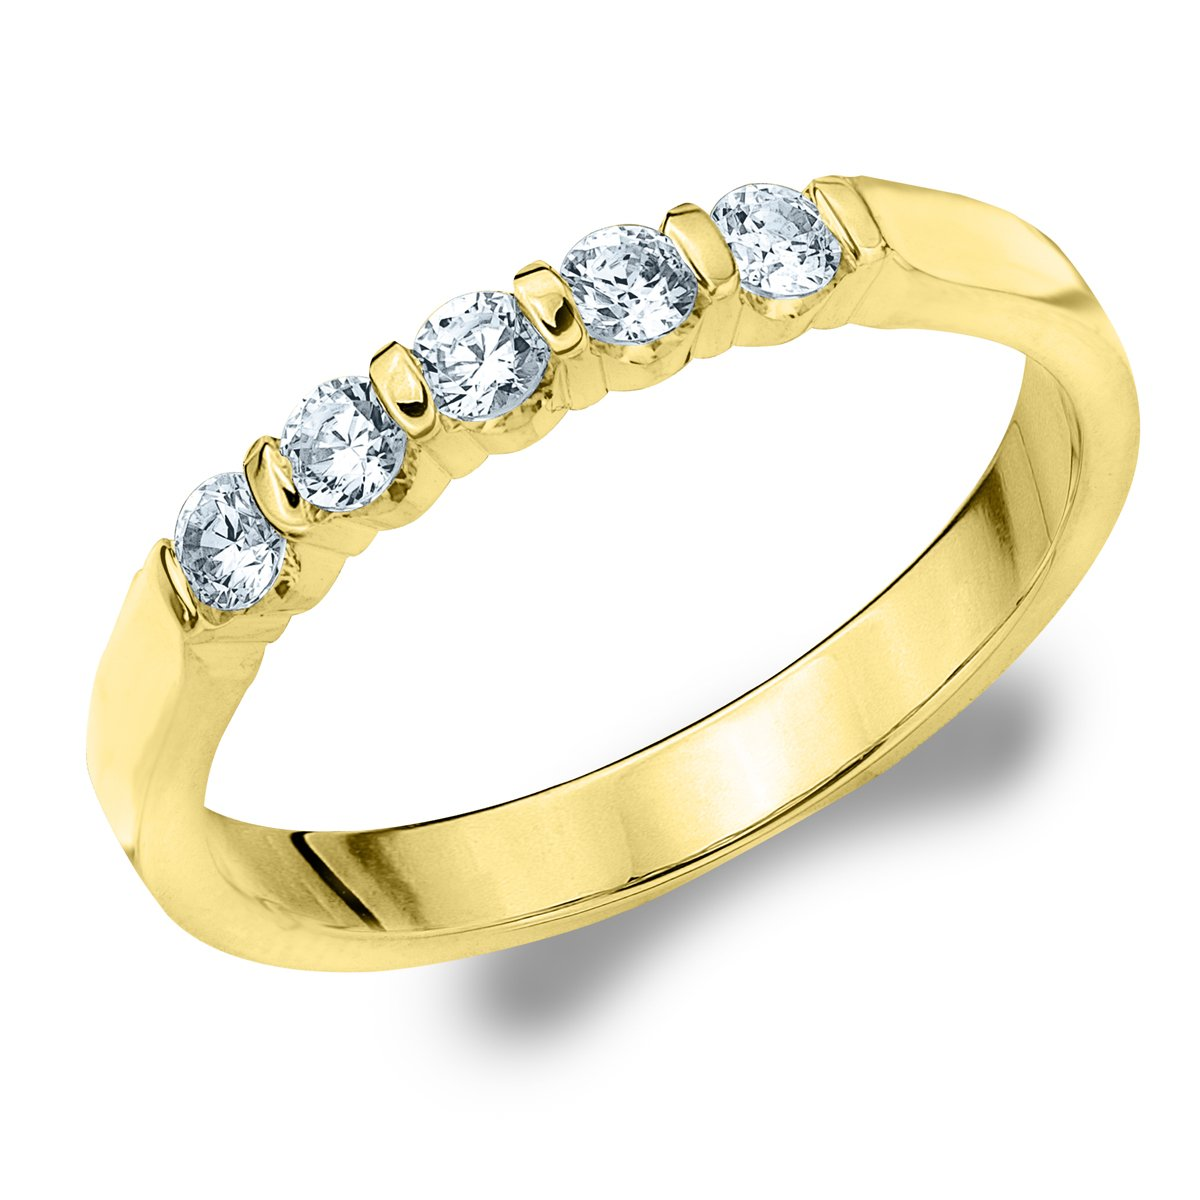 5 Stone Diamond Ring for Women.25 CT in 10K Gold, 5 Stone Diamond Wedding Anniversary Band by Eternity Wedding Bands (Image #1)